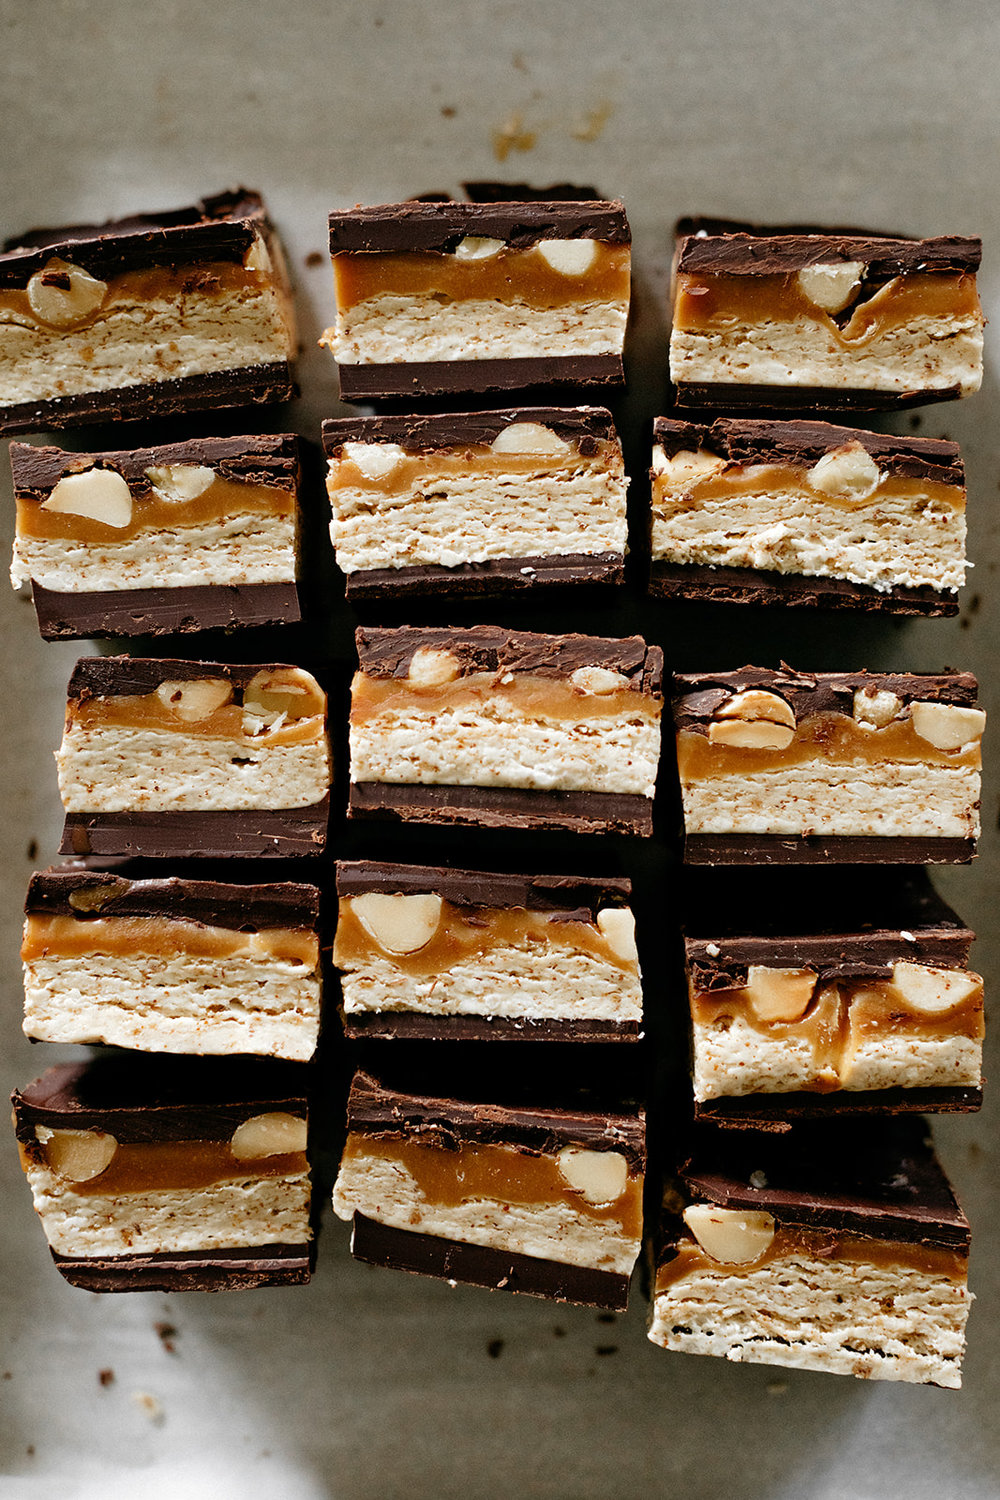 7-19-19-molly-yeh-homemade-snickers-4.jpg